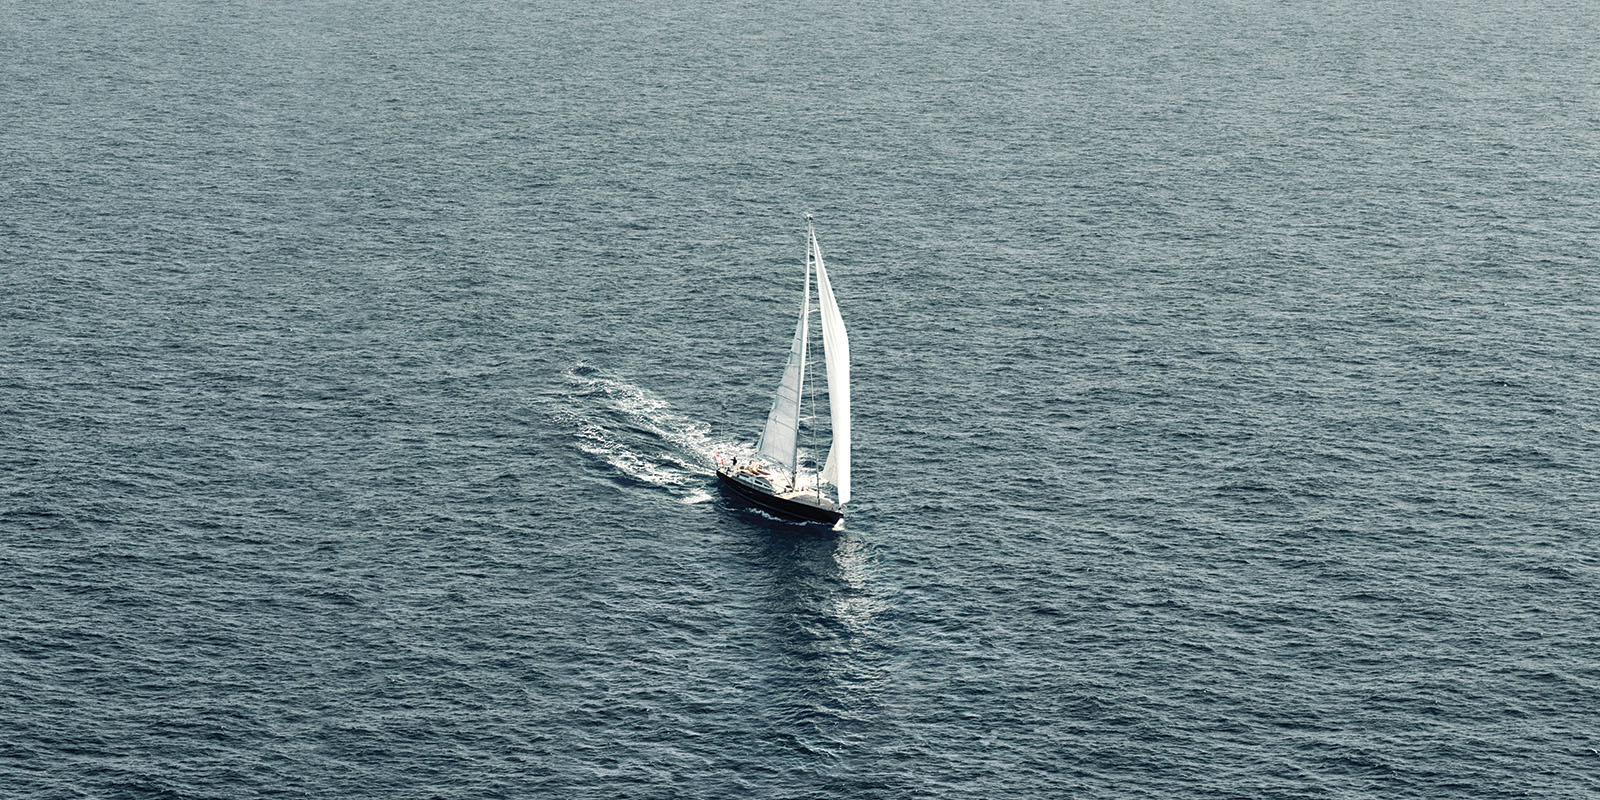 Luxury sailing boat on the ocean